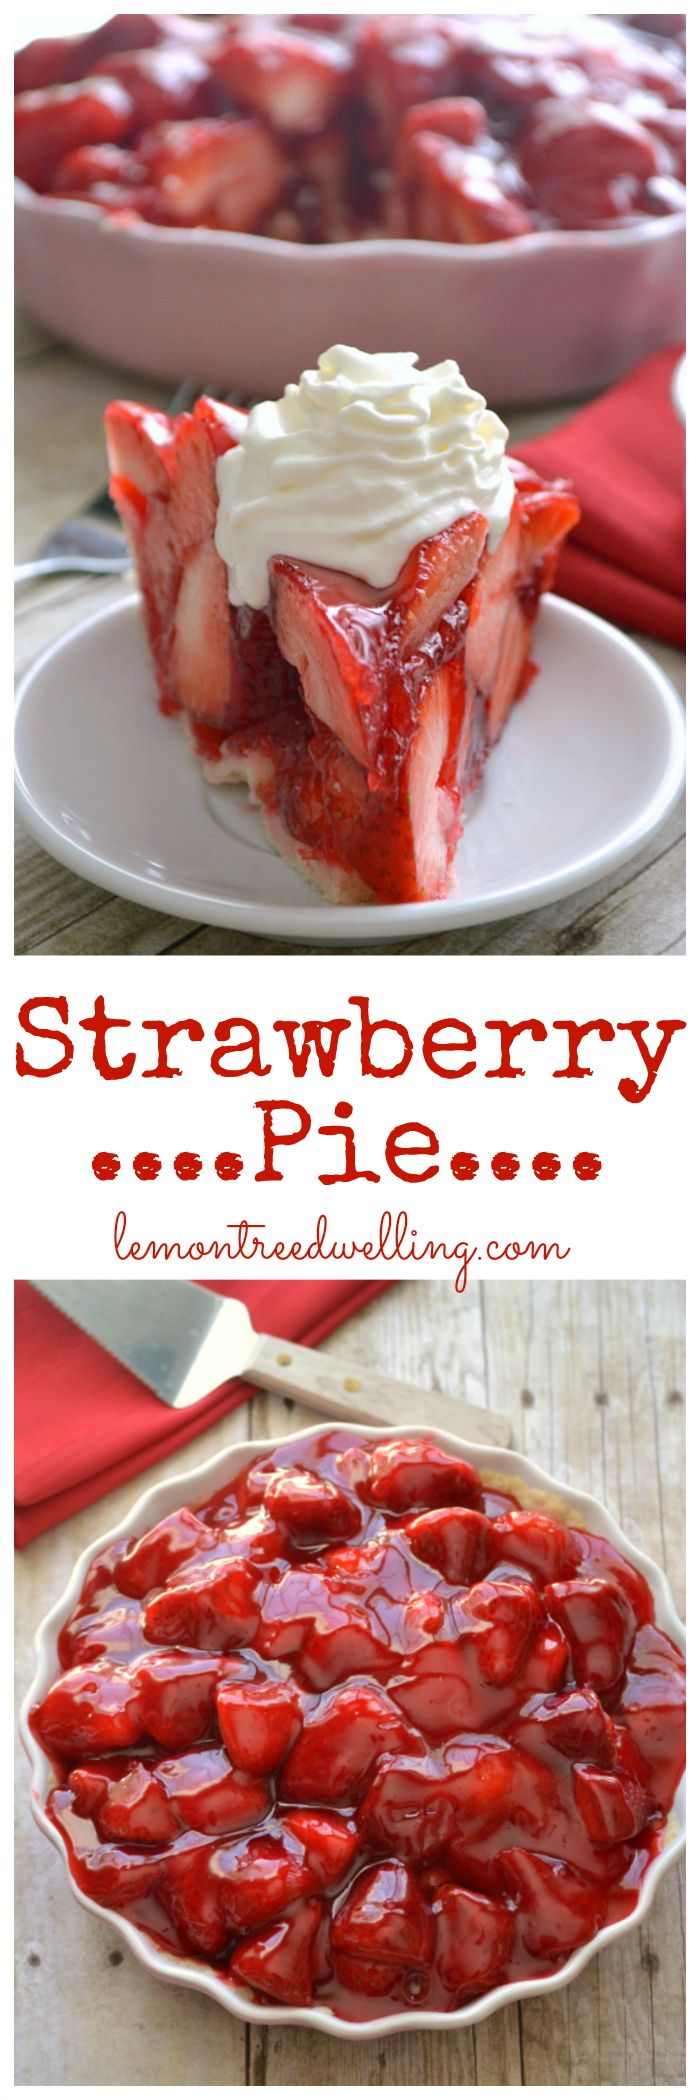 Strawberry Pie | Lemon Tree Dwelling. Use this filing to fill 2 Graham cracker crusts and you have Nanny' s famous strawberry pie!